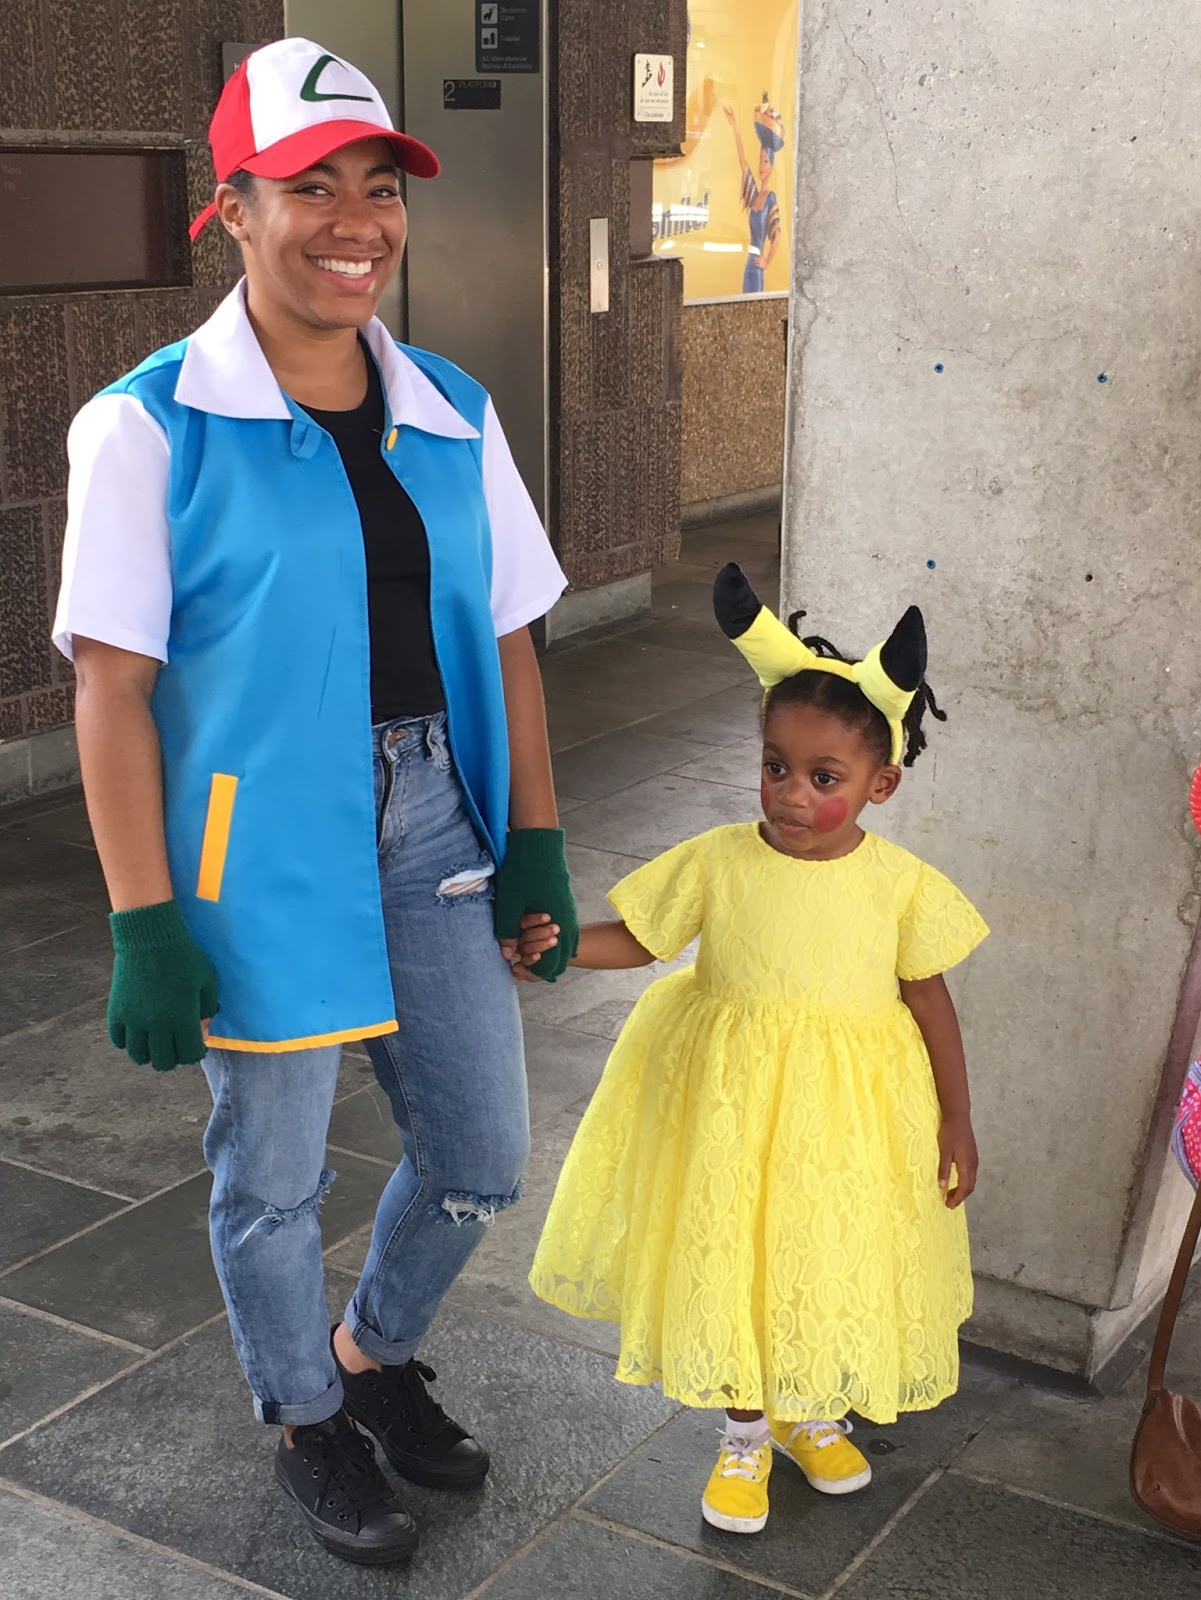 pokemon ash ketchum pikachu halloween costumes mommy daughter top atlanta georgia black mom mommy motherhood blogger  sc 1 st  The Daily April N Ava & The Daily April N Ava: 2016